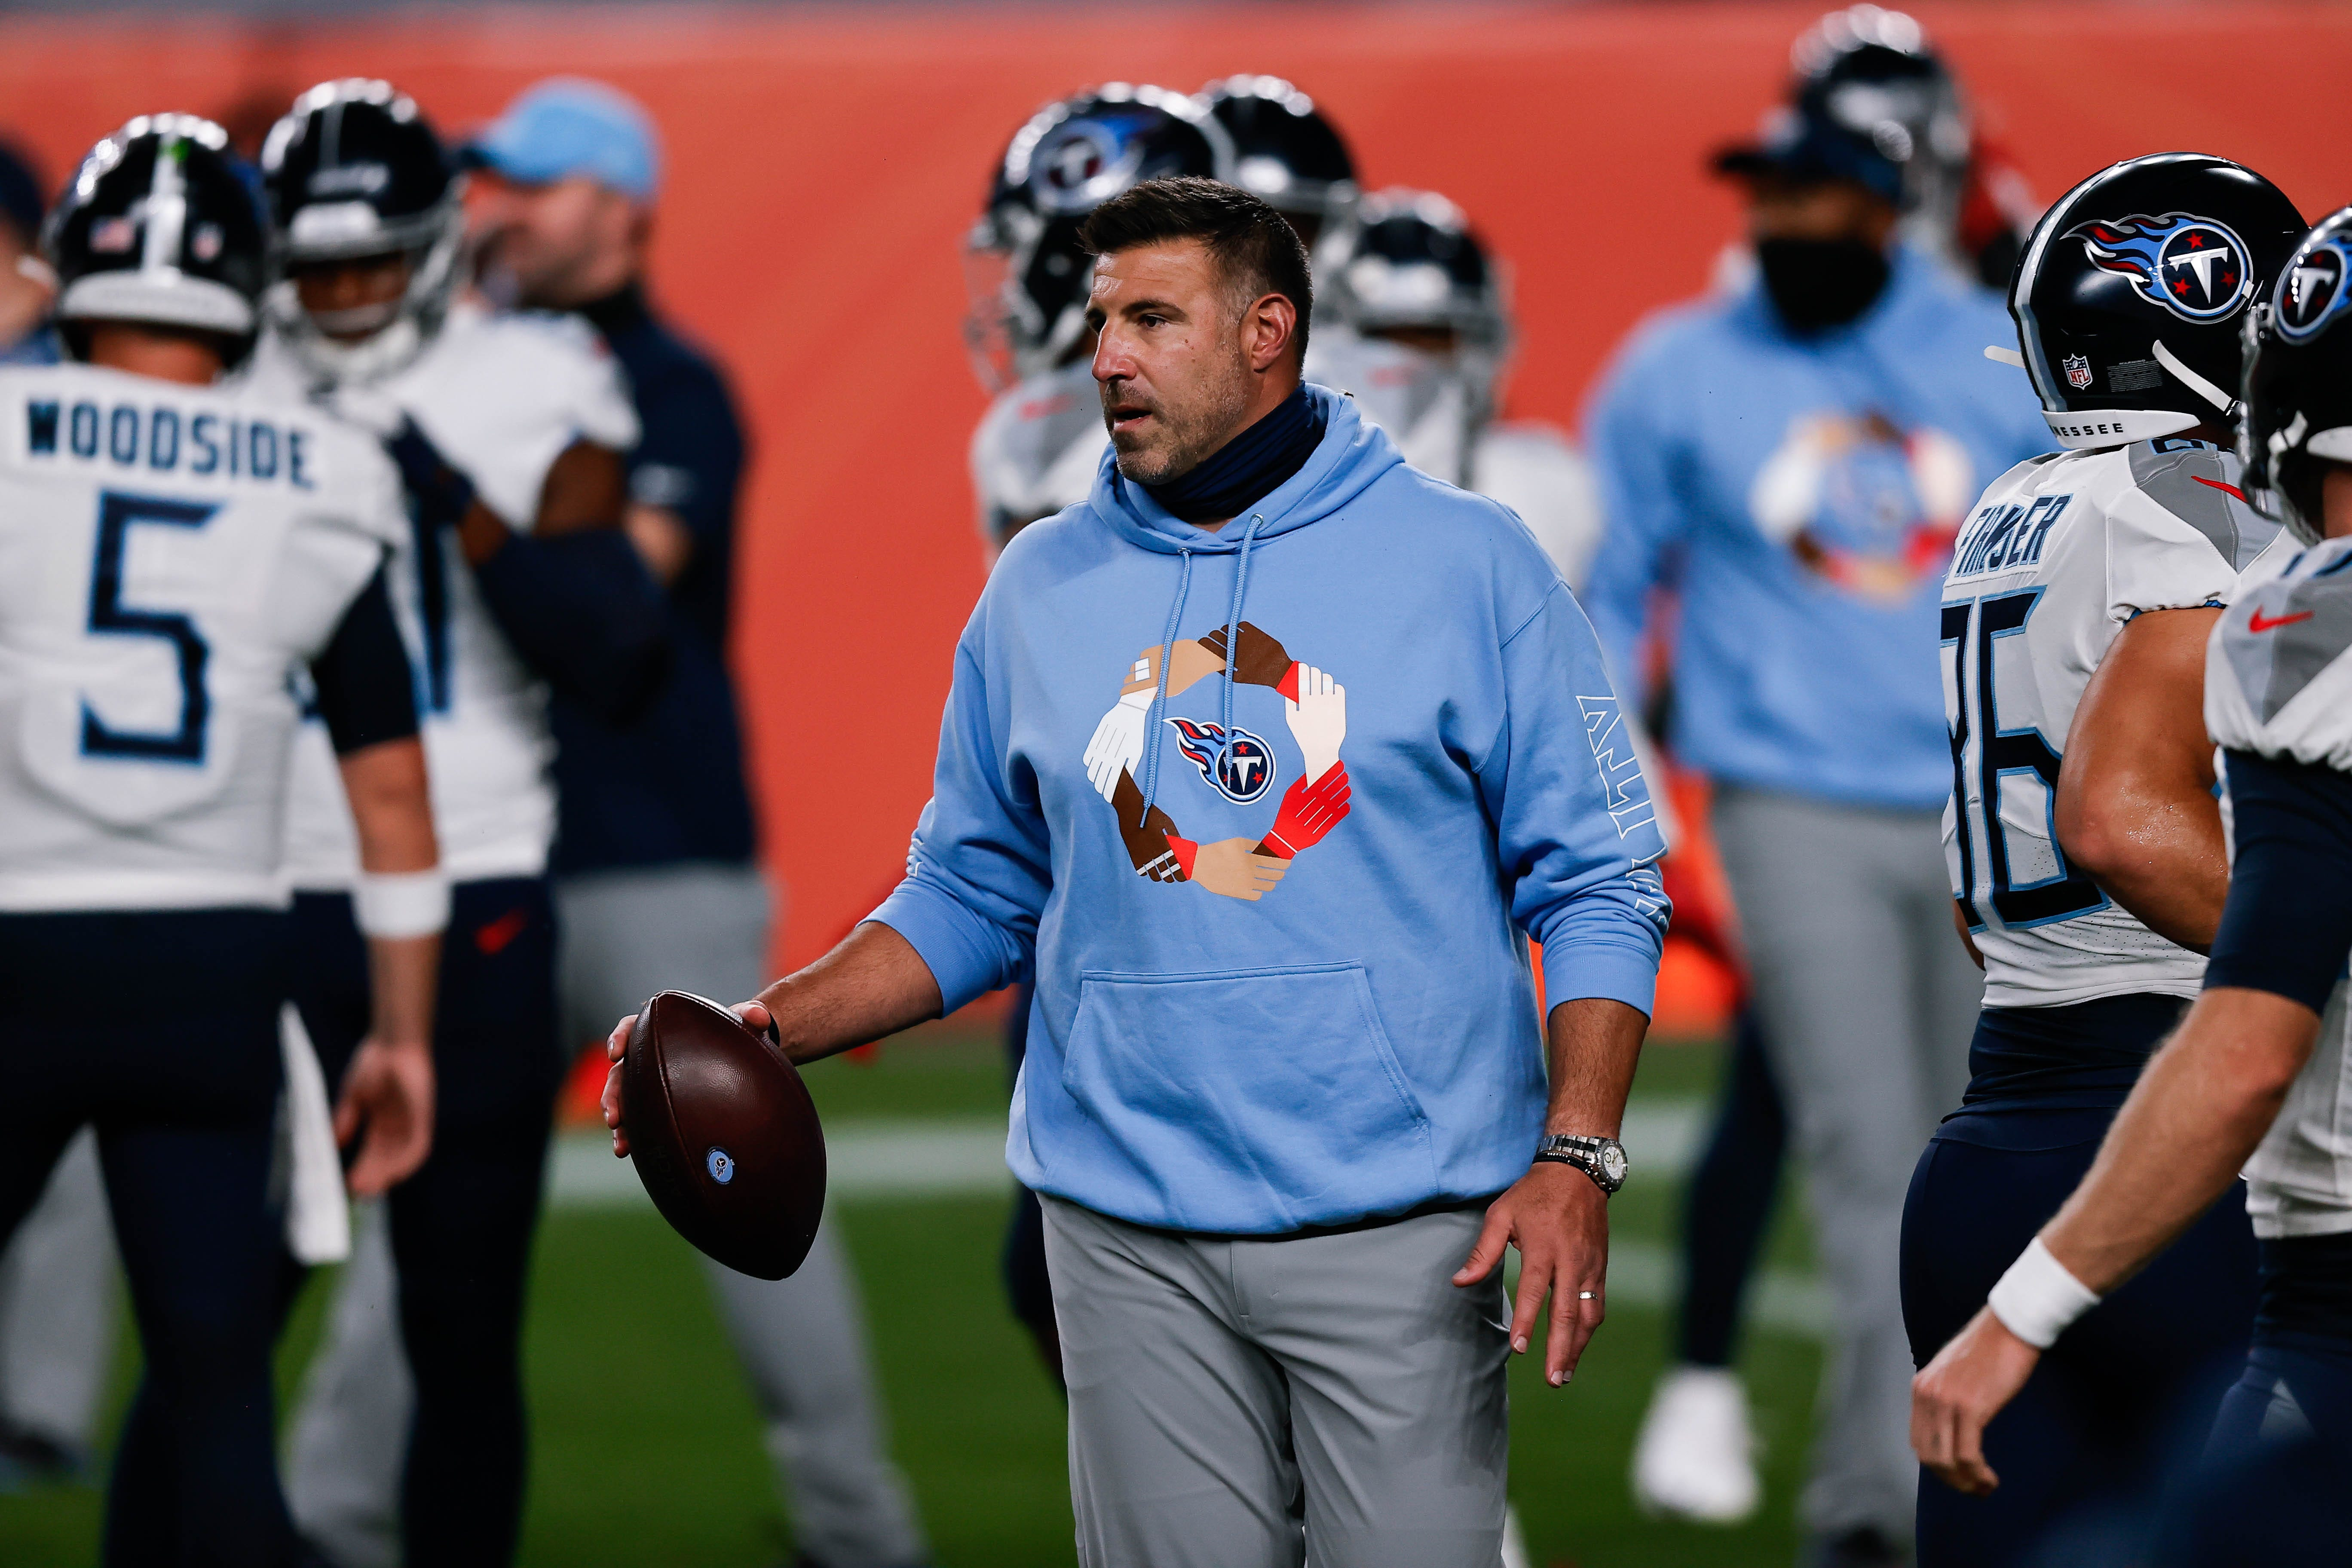 Titans coach Mike Vrabel determined to keep suicide prevention message going: 'People are there for you'